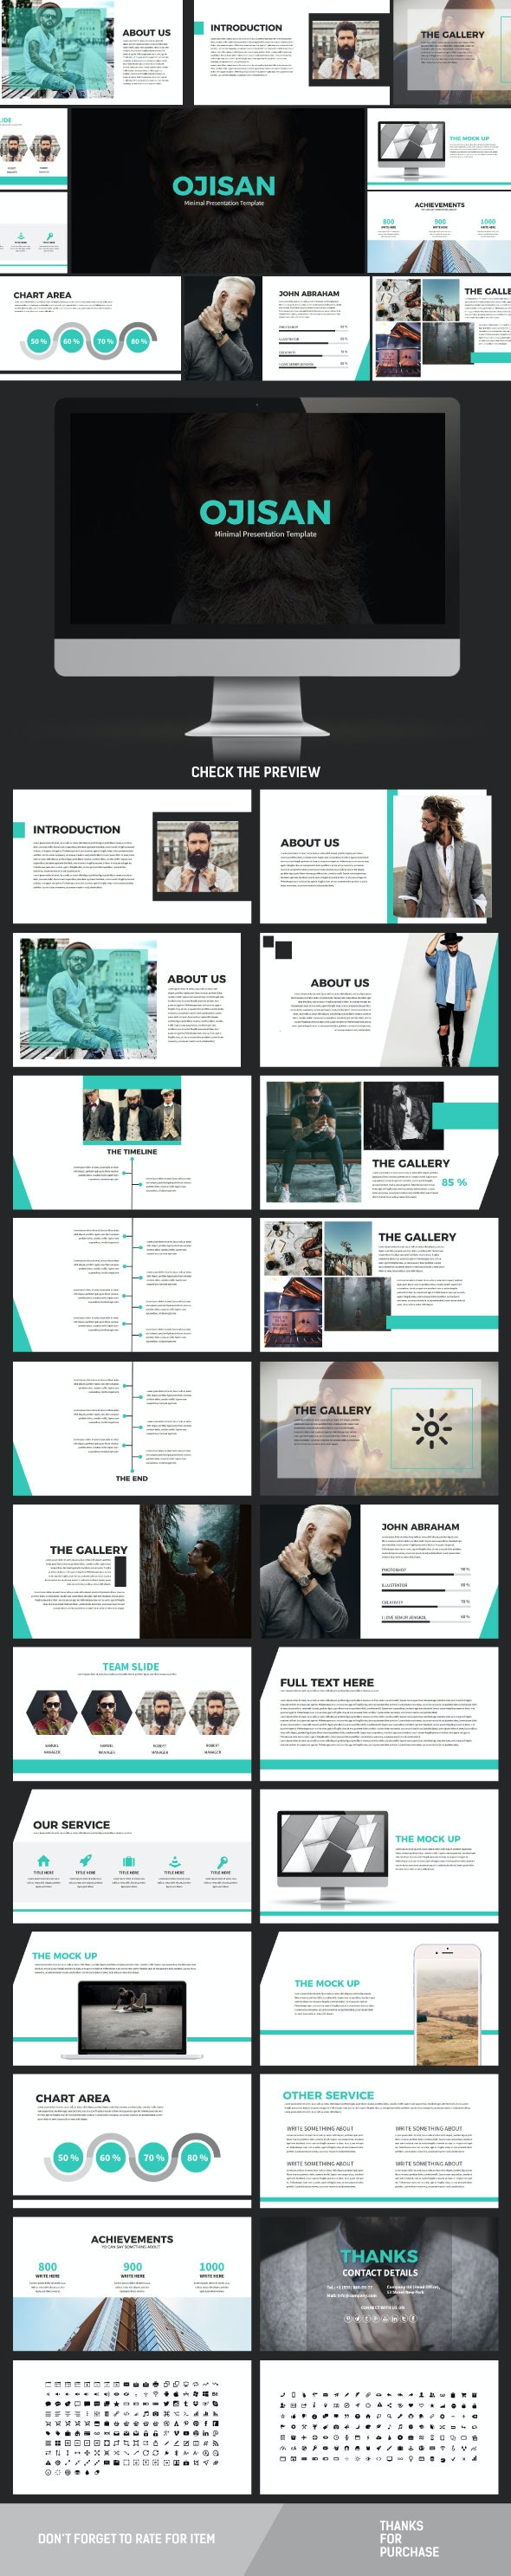 Ojisan Keynote Template - Creative Keynote Templates